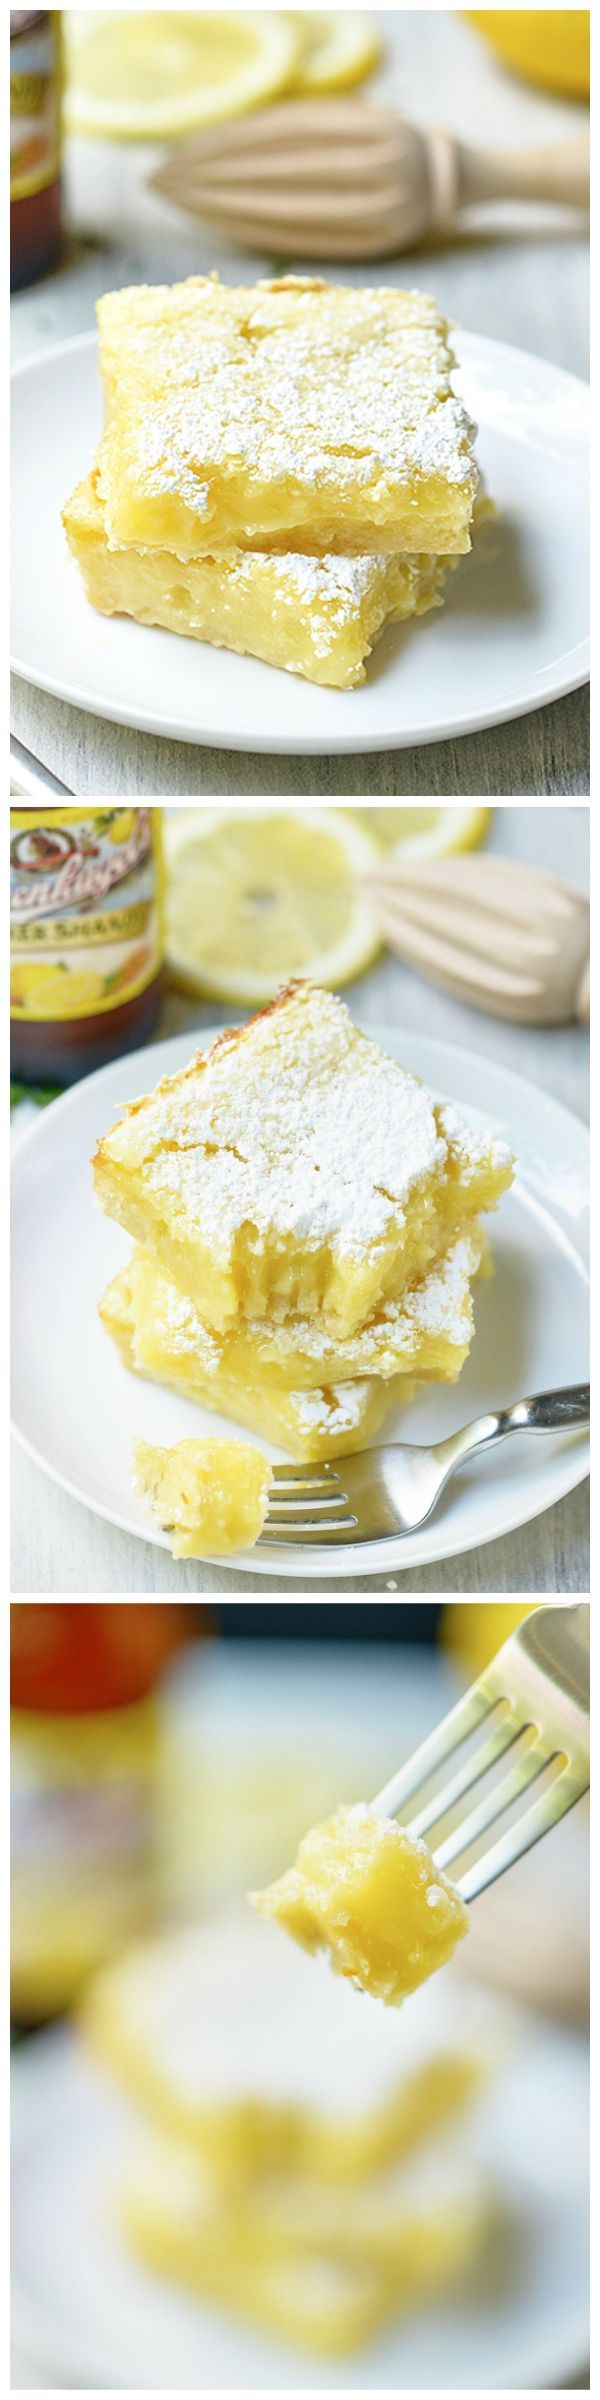 Summer Shandy Lemon Bars - a perfectly sweet, buttery shortbread topped with an ooey, gooey, lemon filling!